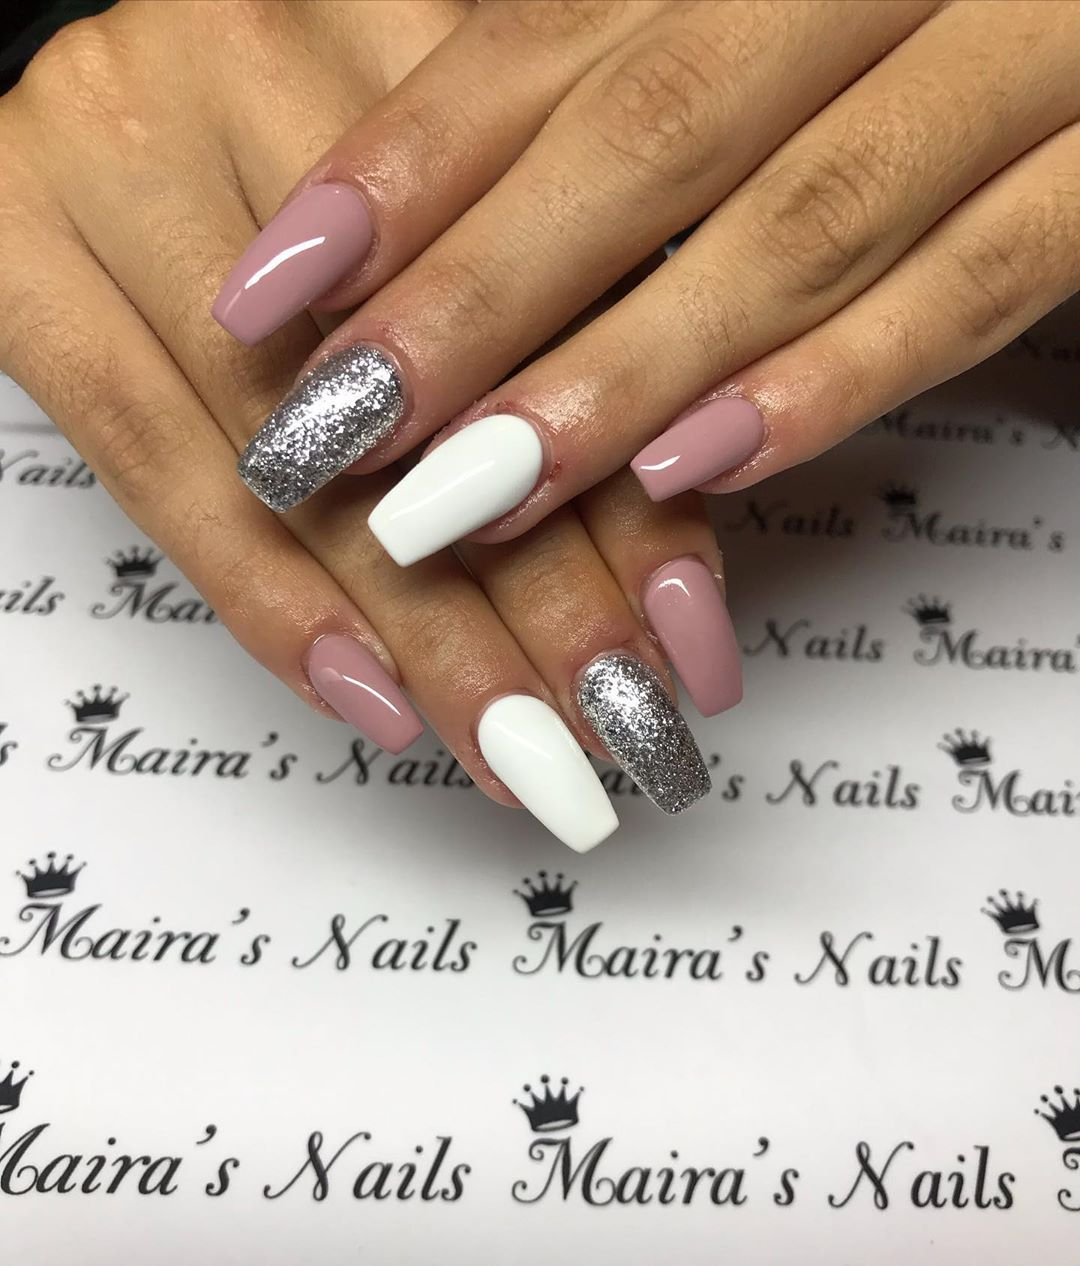 Art Nails Productos Para Unas 2020